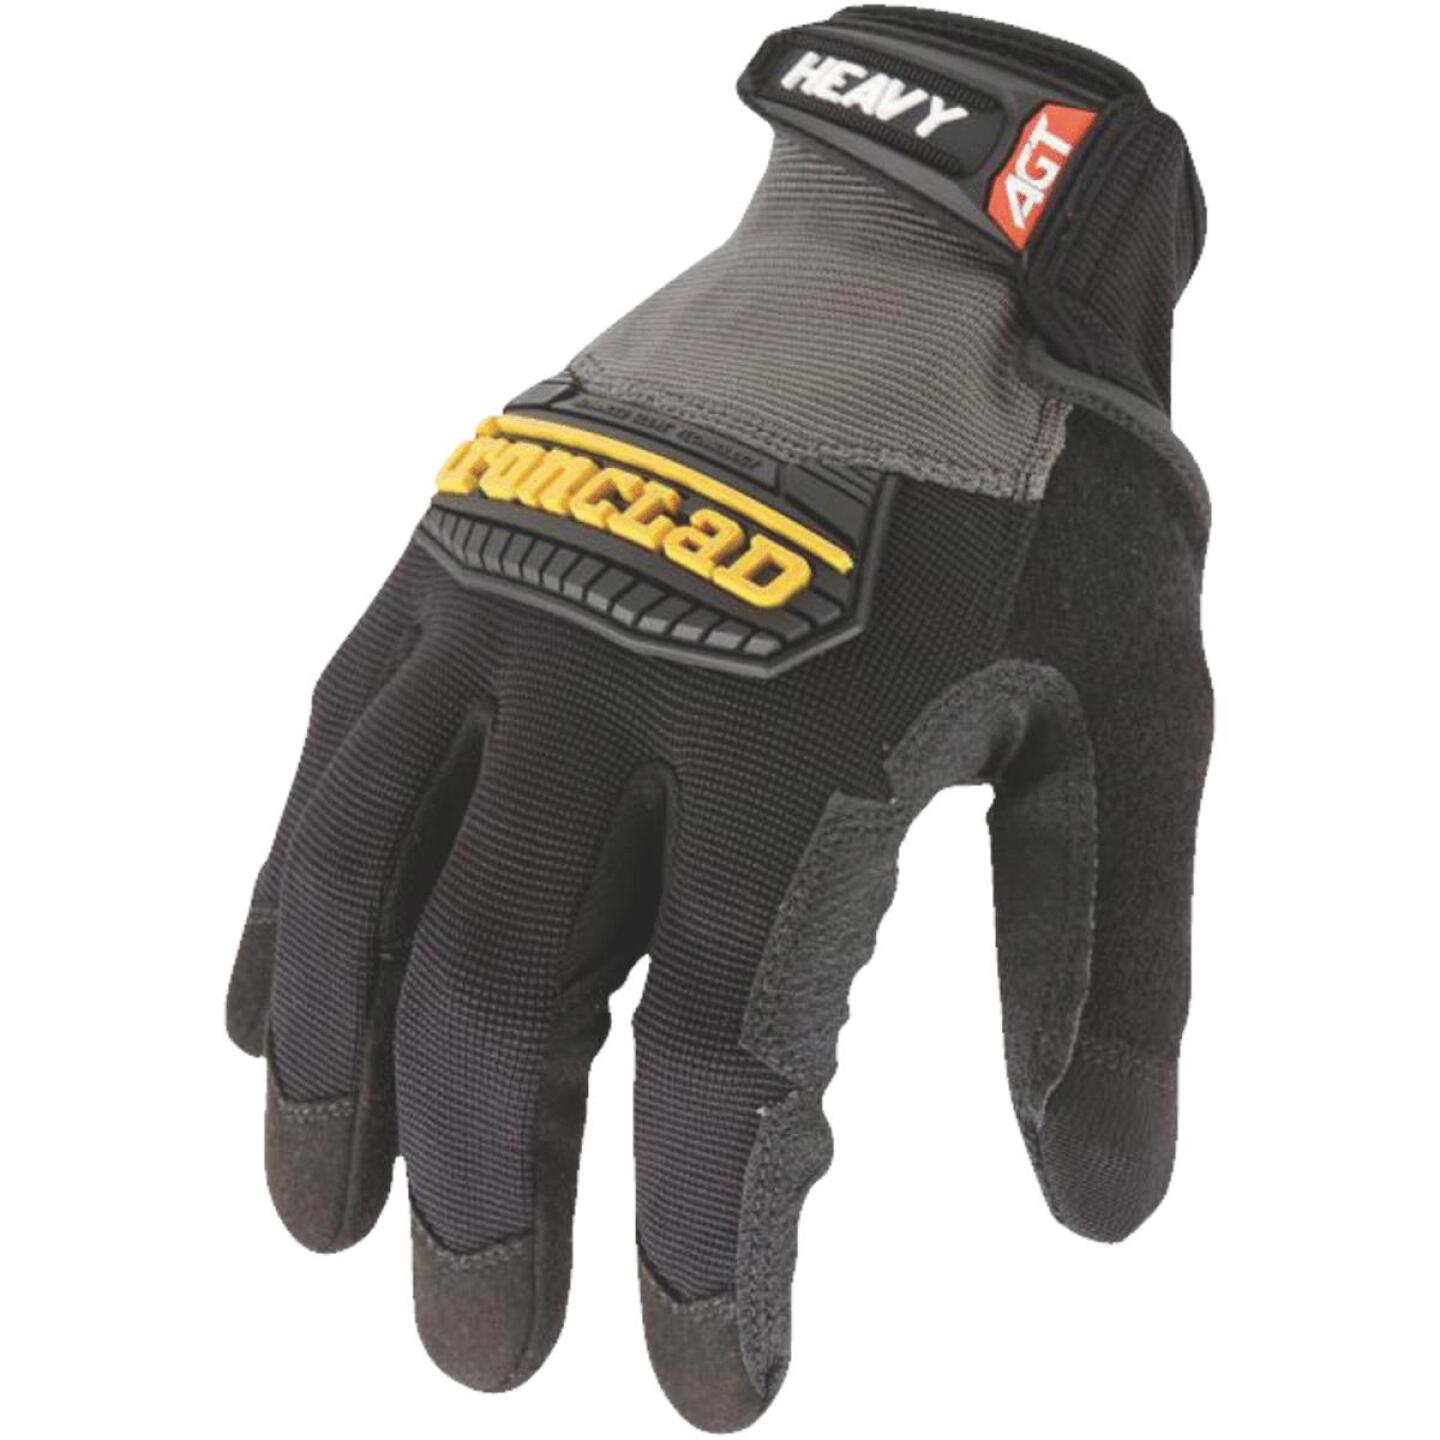 Ironclad Heavy Utility Men's Medium Synthetic Leather High Performance Glove Image 2